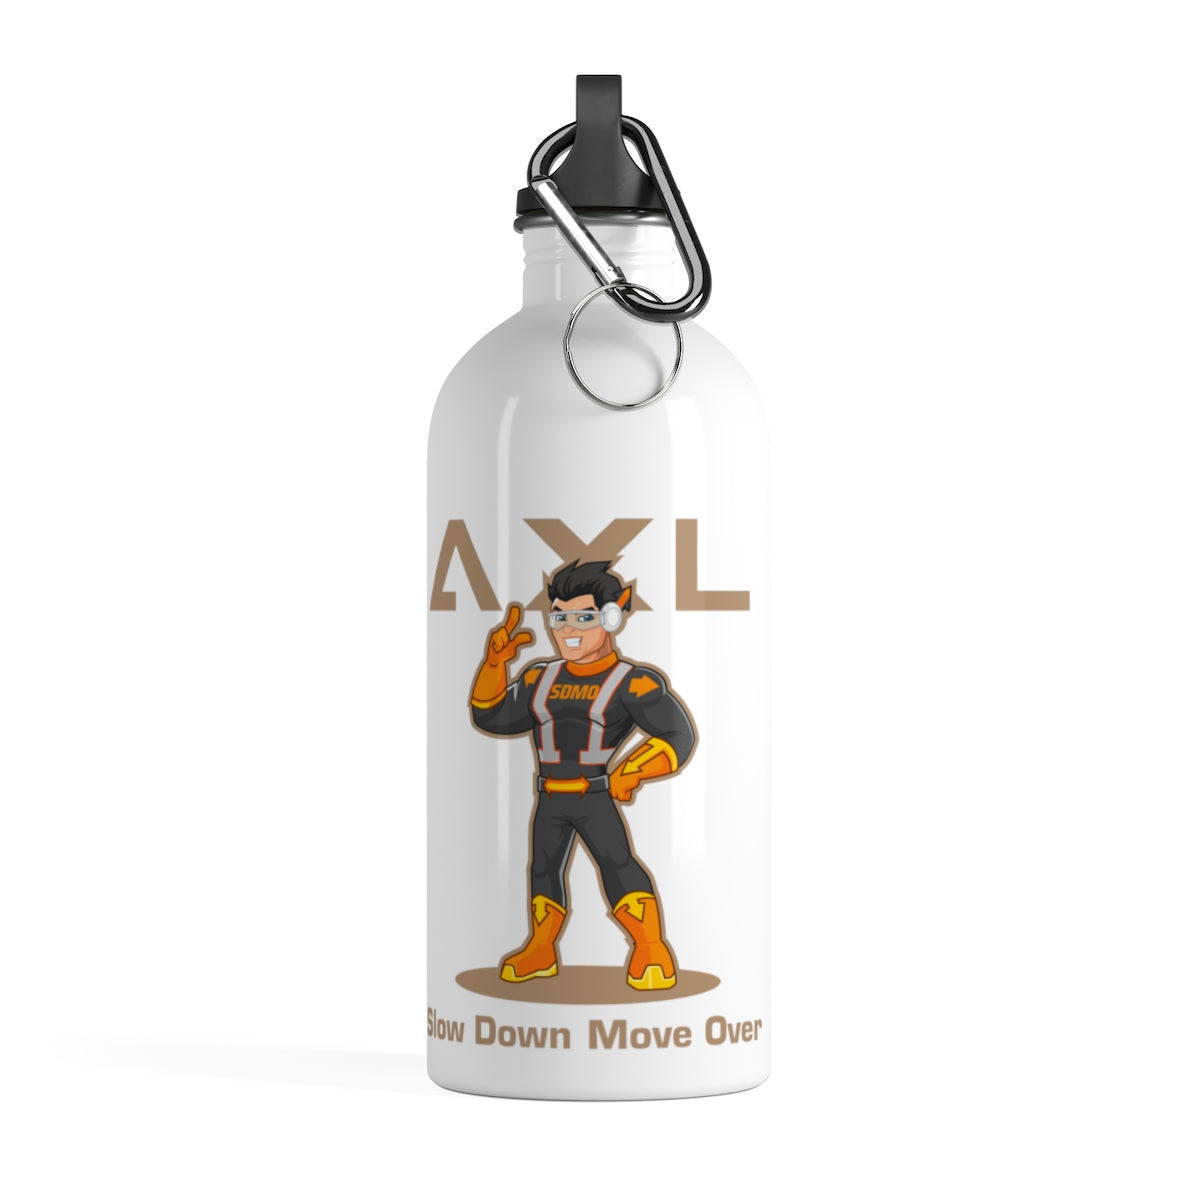 Axl & City (SDMO) Stainless Steel Water Bottle (2-sided)